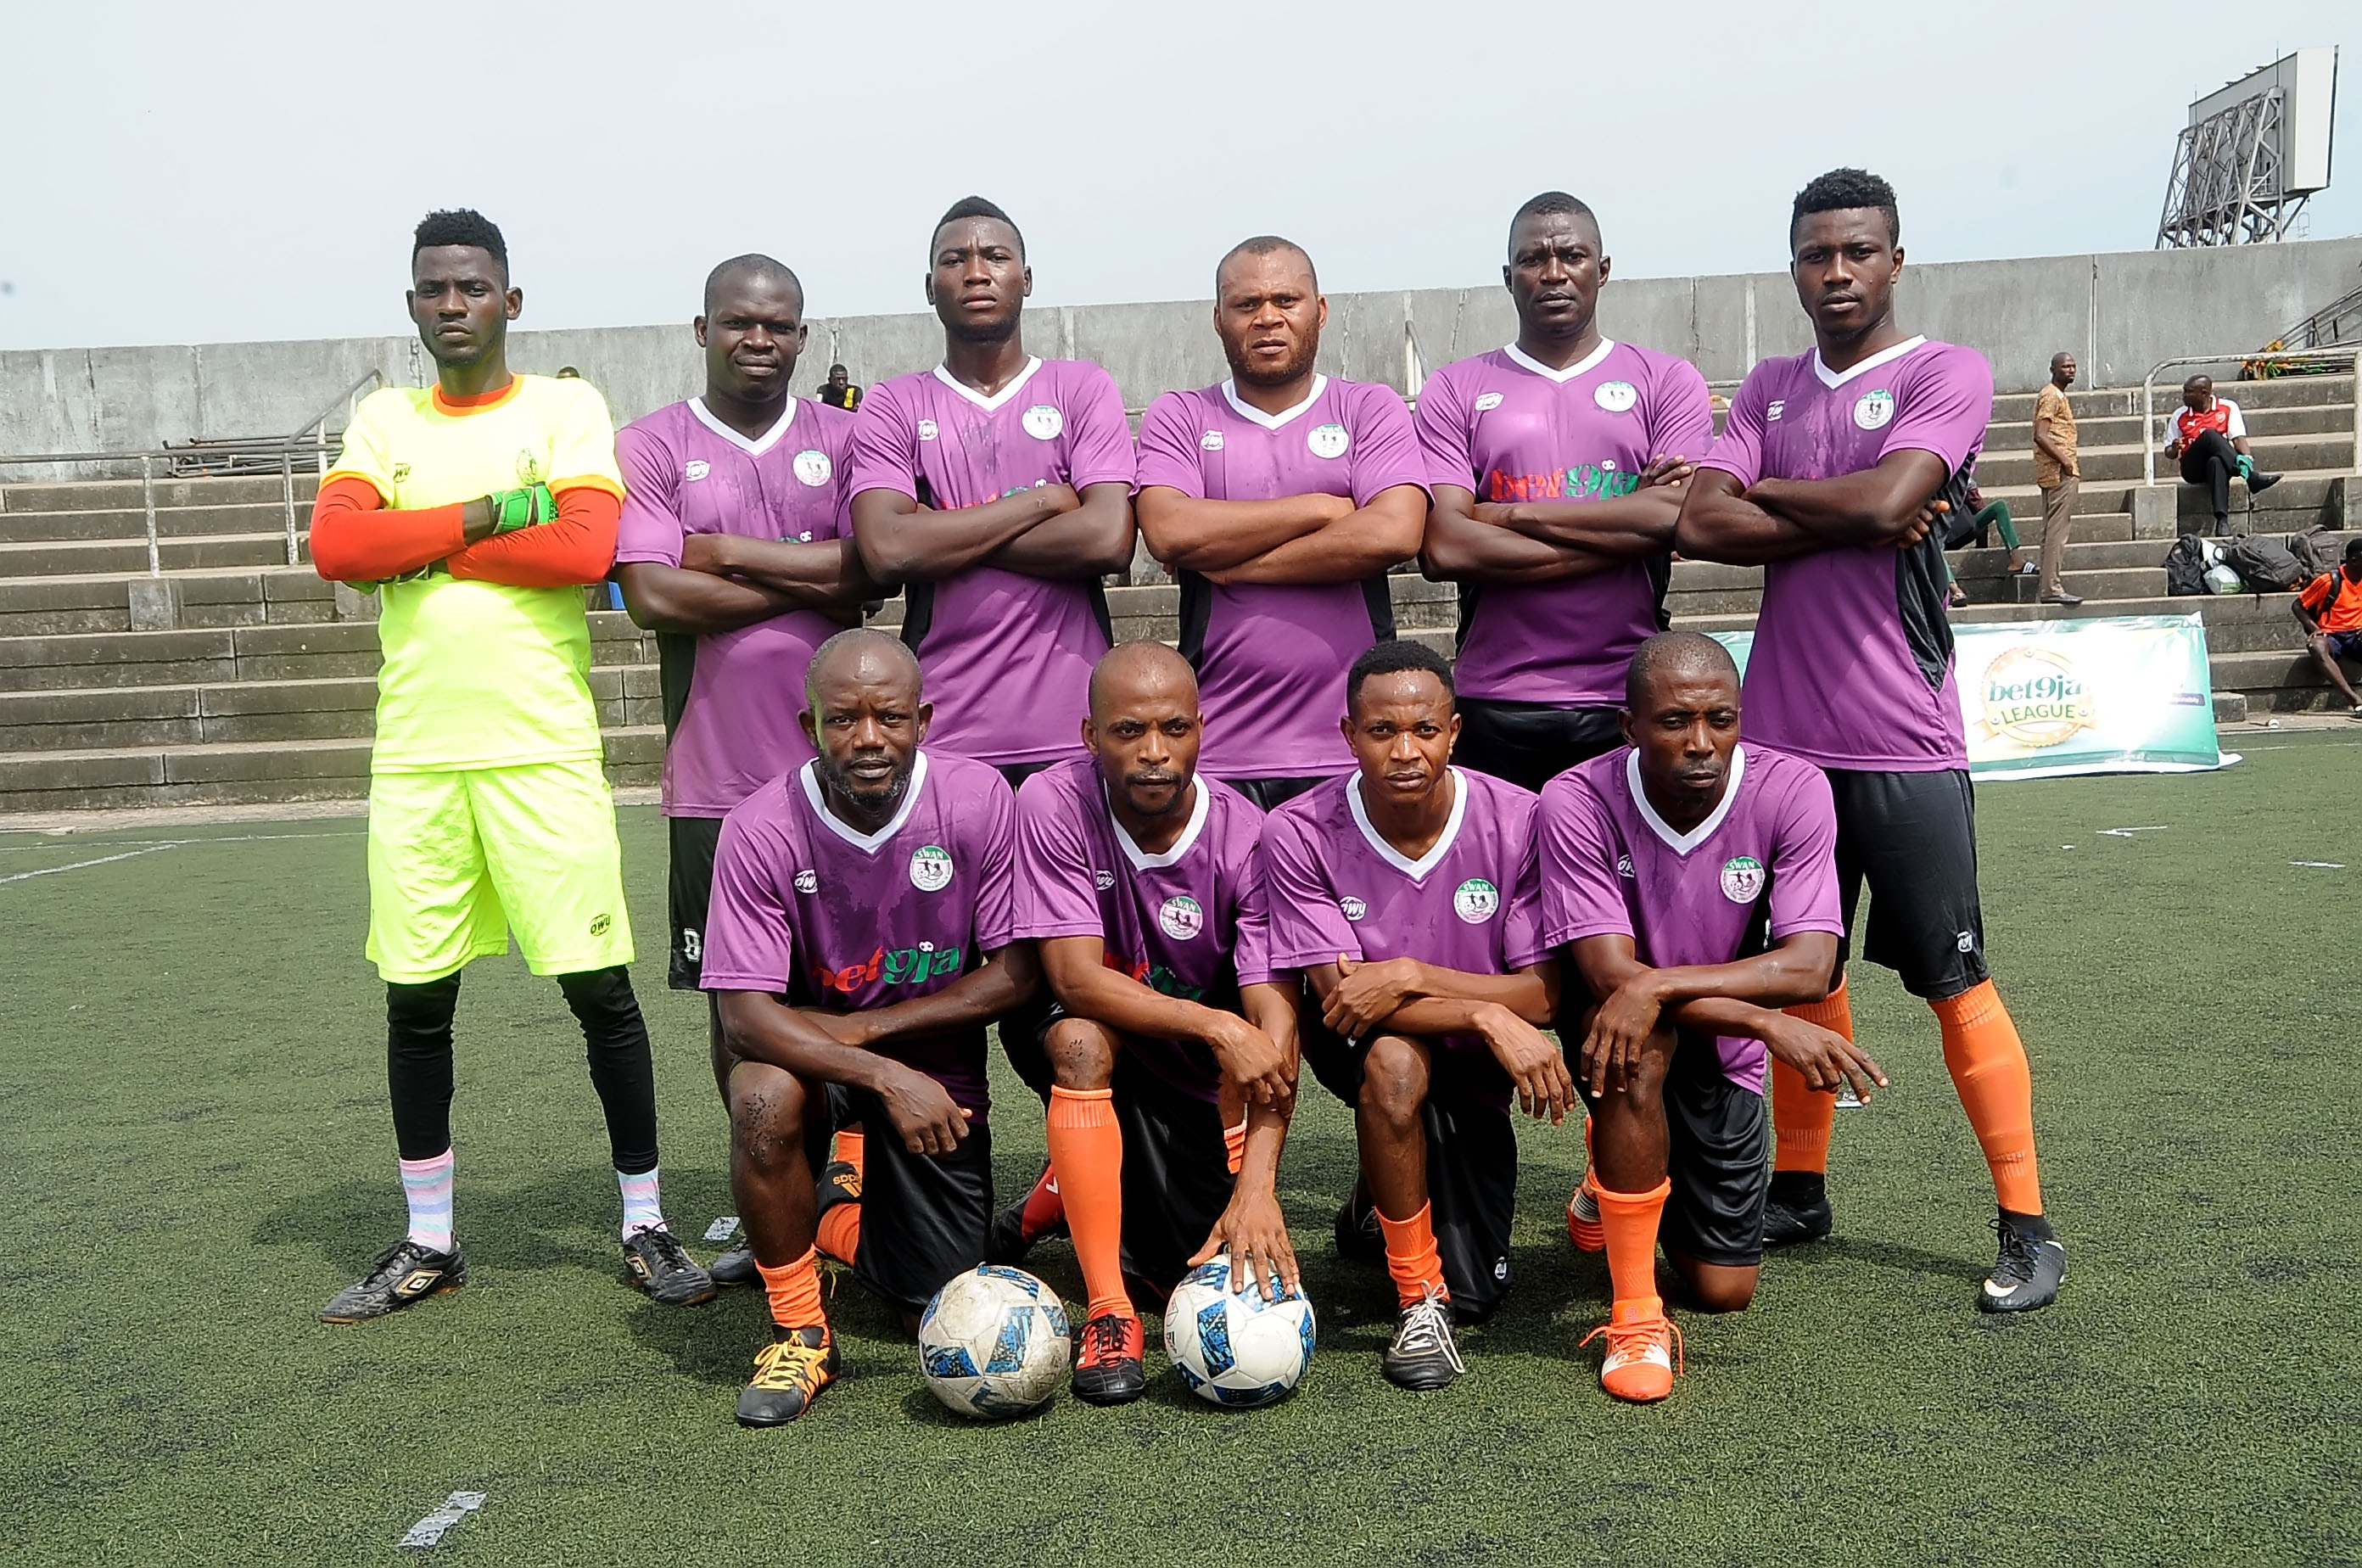 2018 Bet9ja Lagos SWAN Cup: Complete Sports Look To Retain Title, Clash With Community Watch In The Final